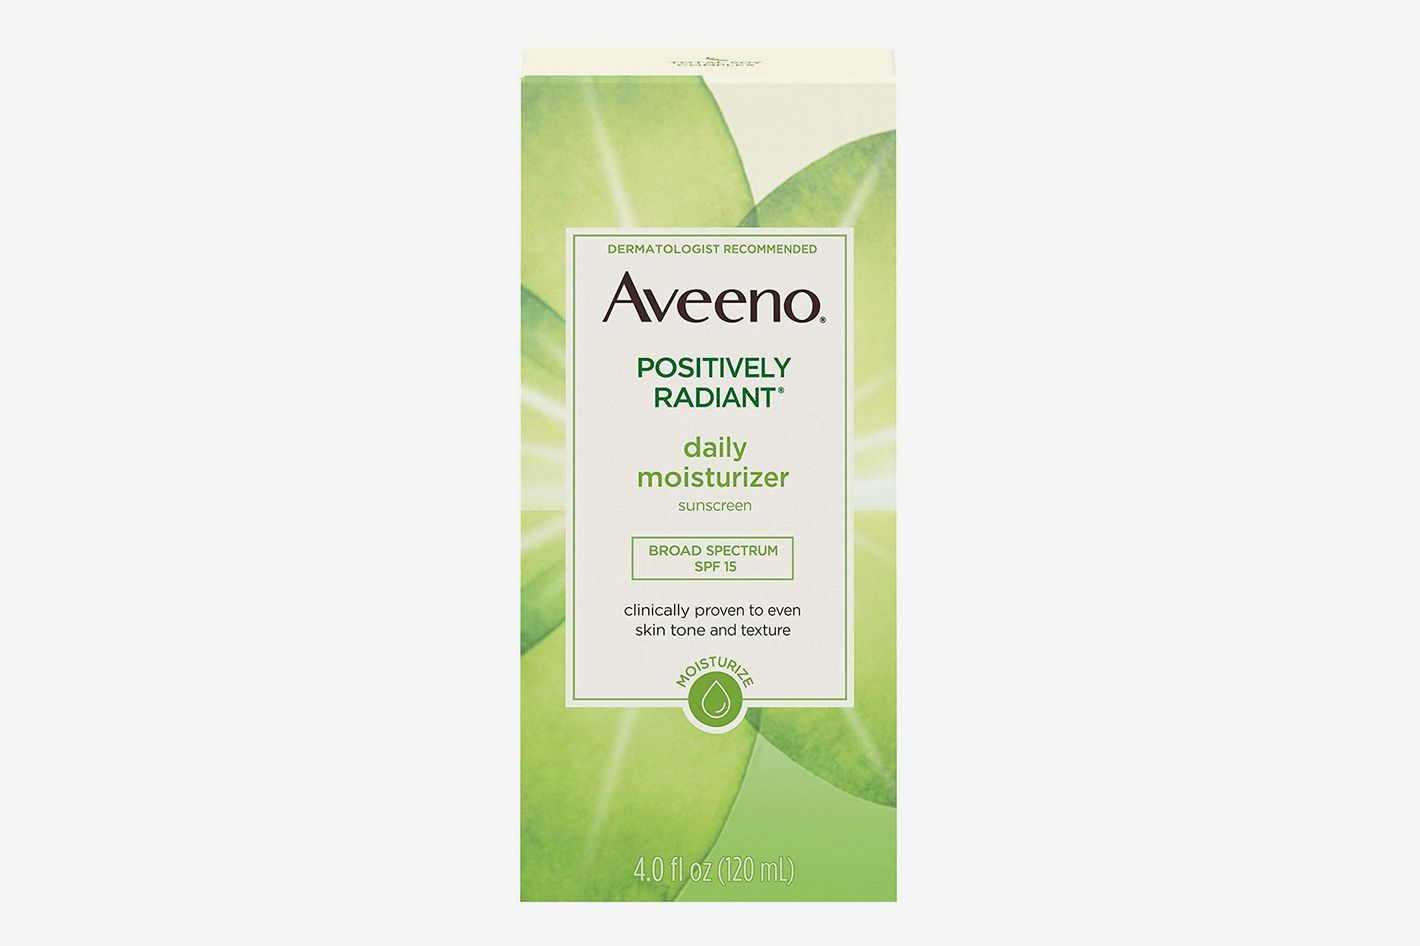 Aveeno Positively Radiant Daily Face Moisturizer with Broad Spectrum SPF 15